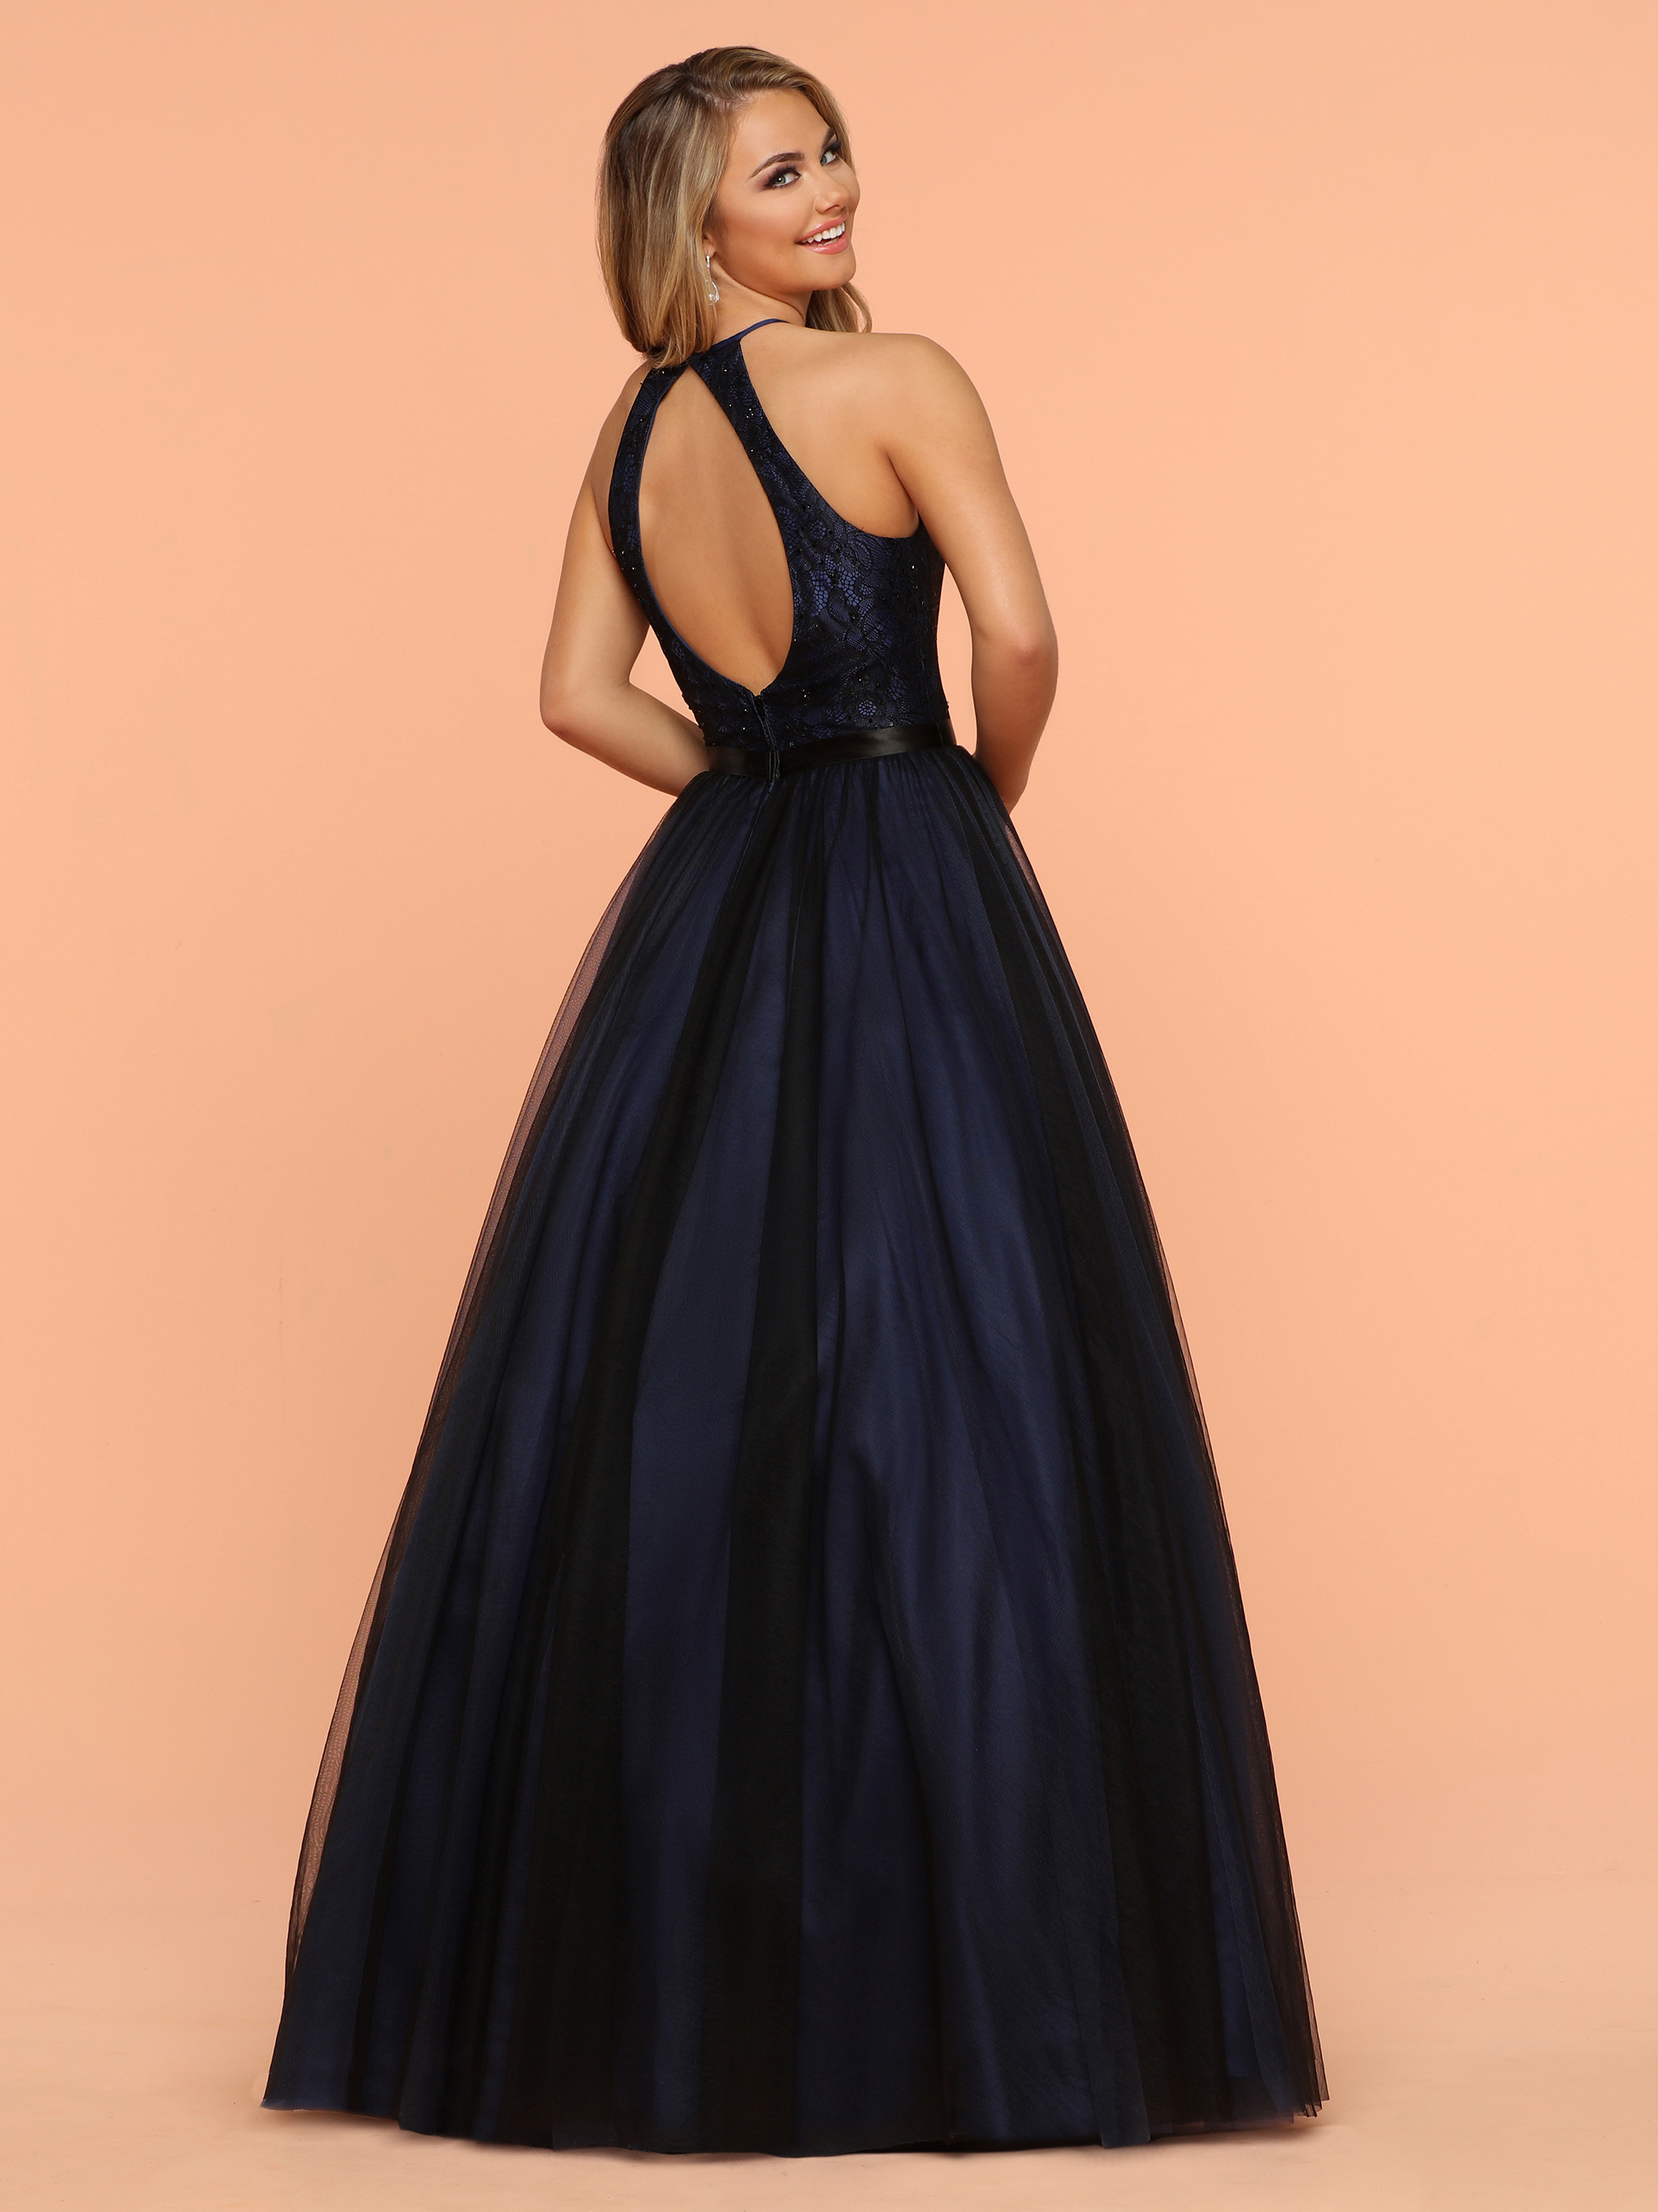 Image showing back view of style #71910